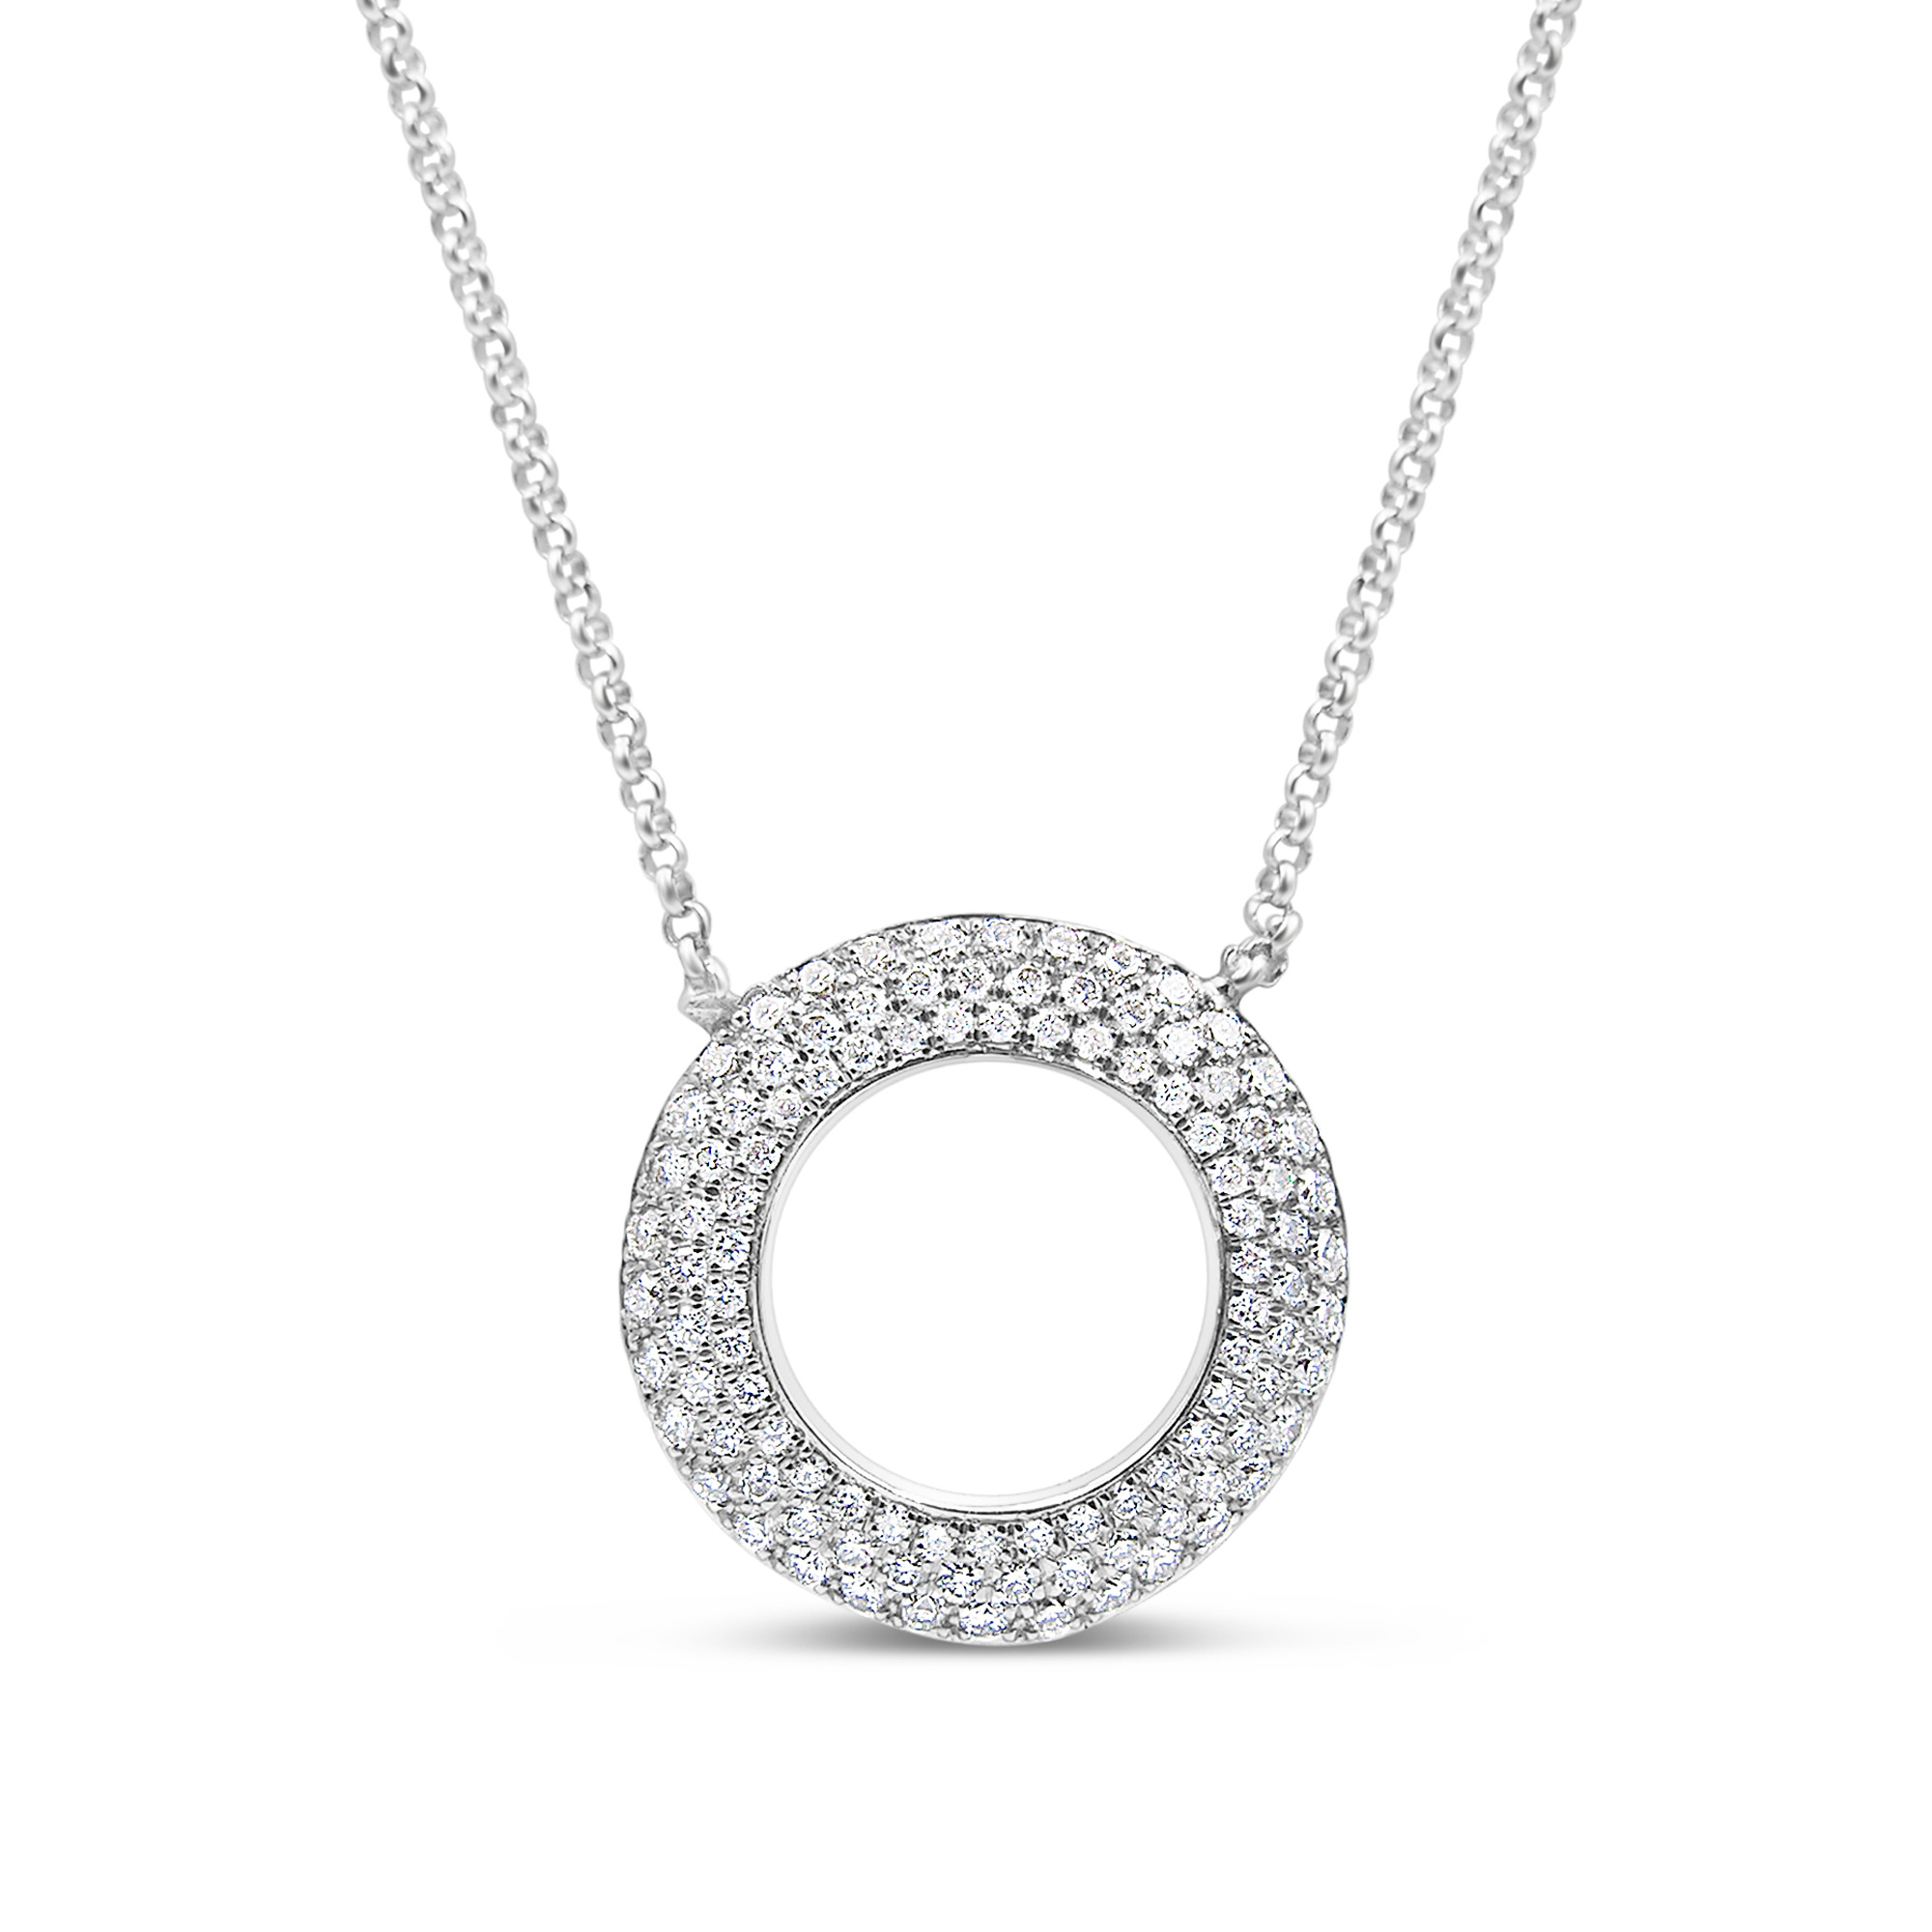 18t white gold chain with 0.50 ct diamonds pendant